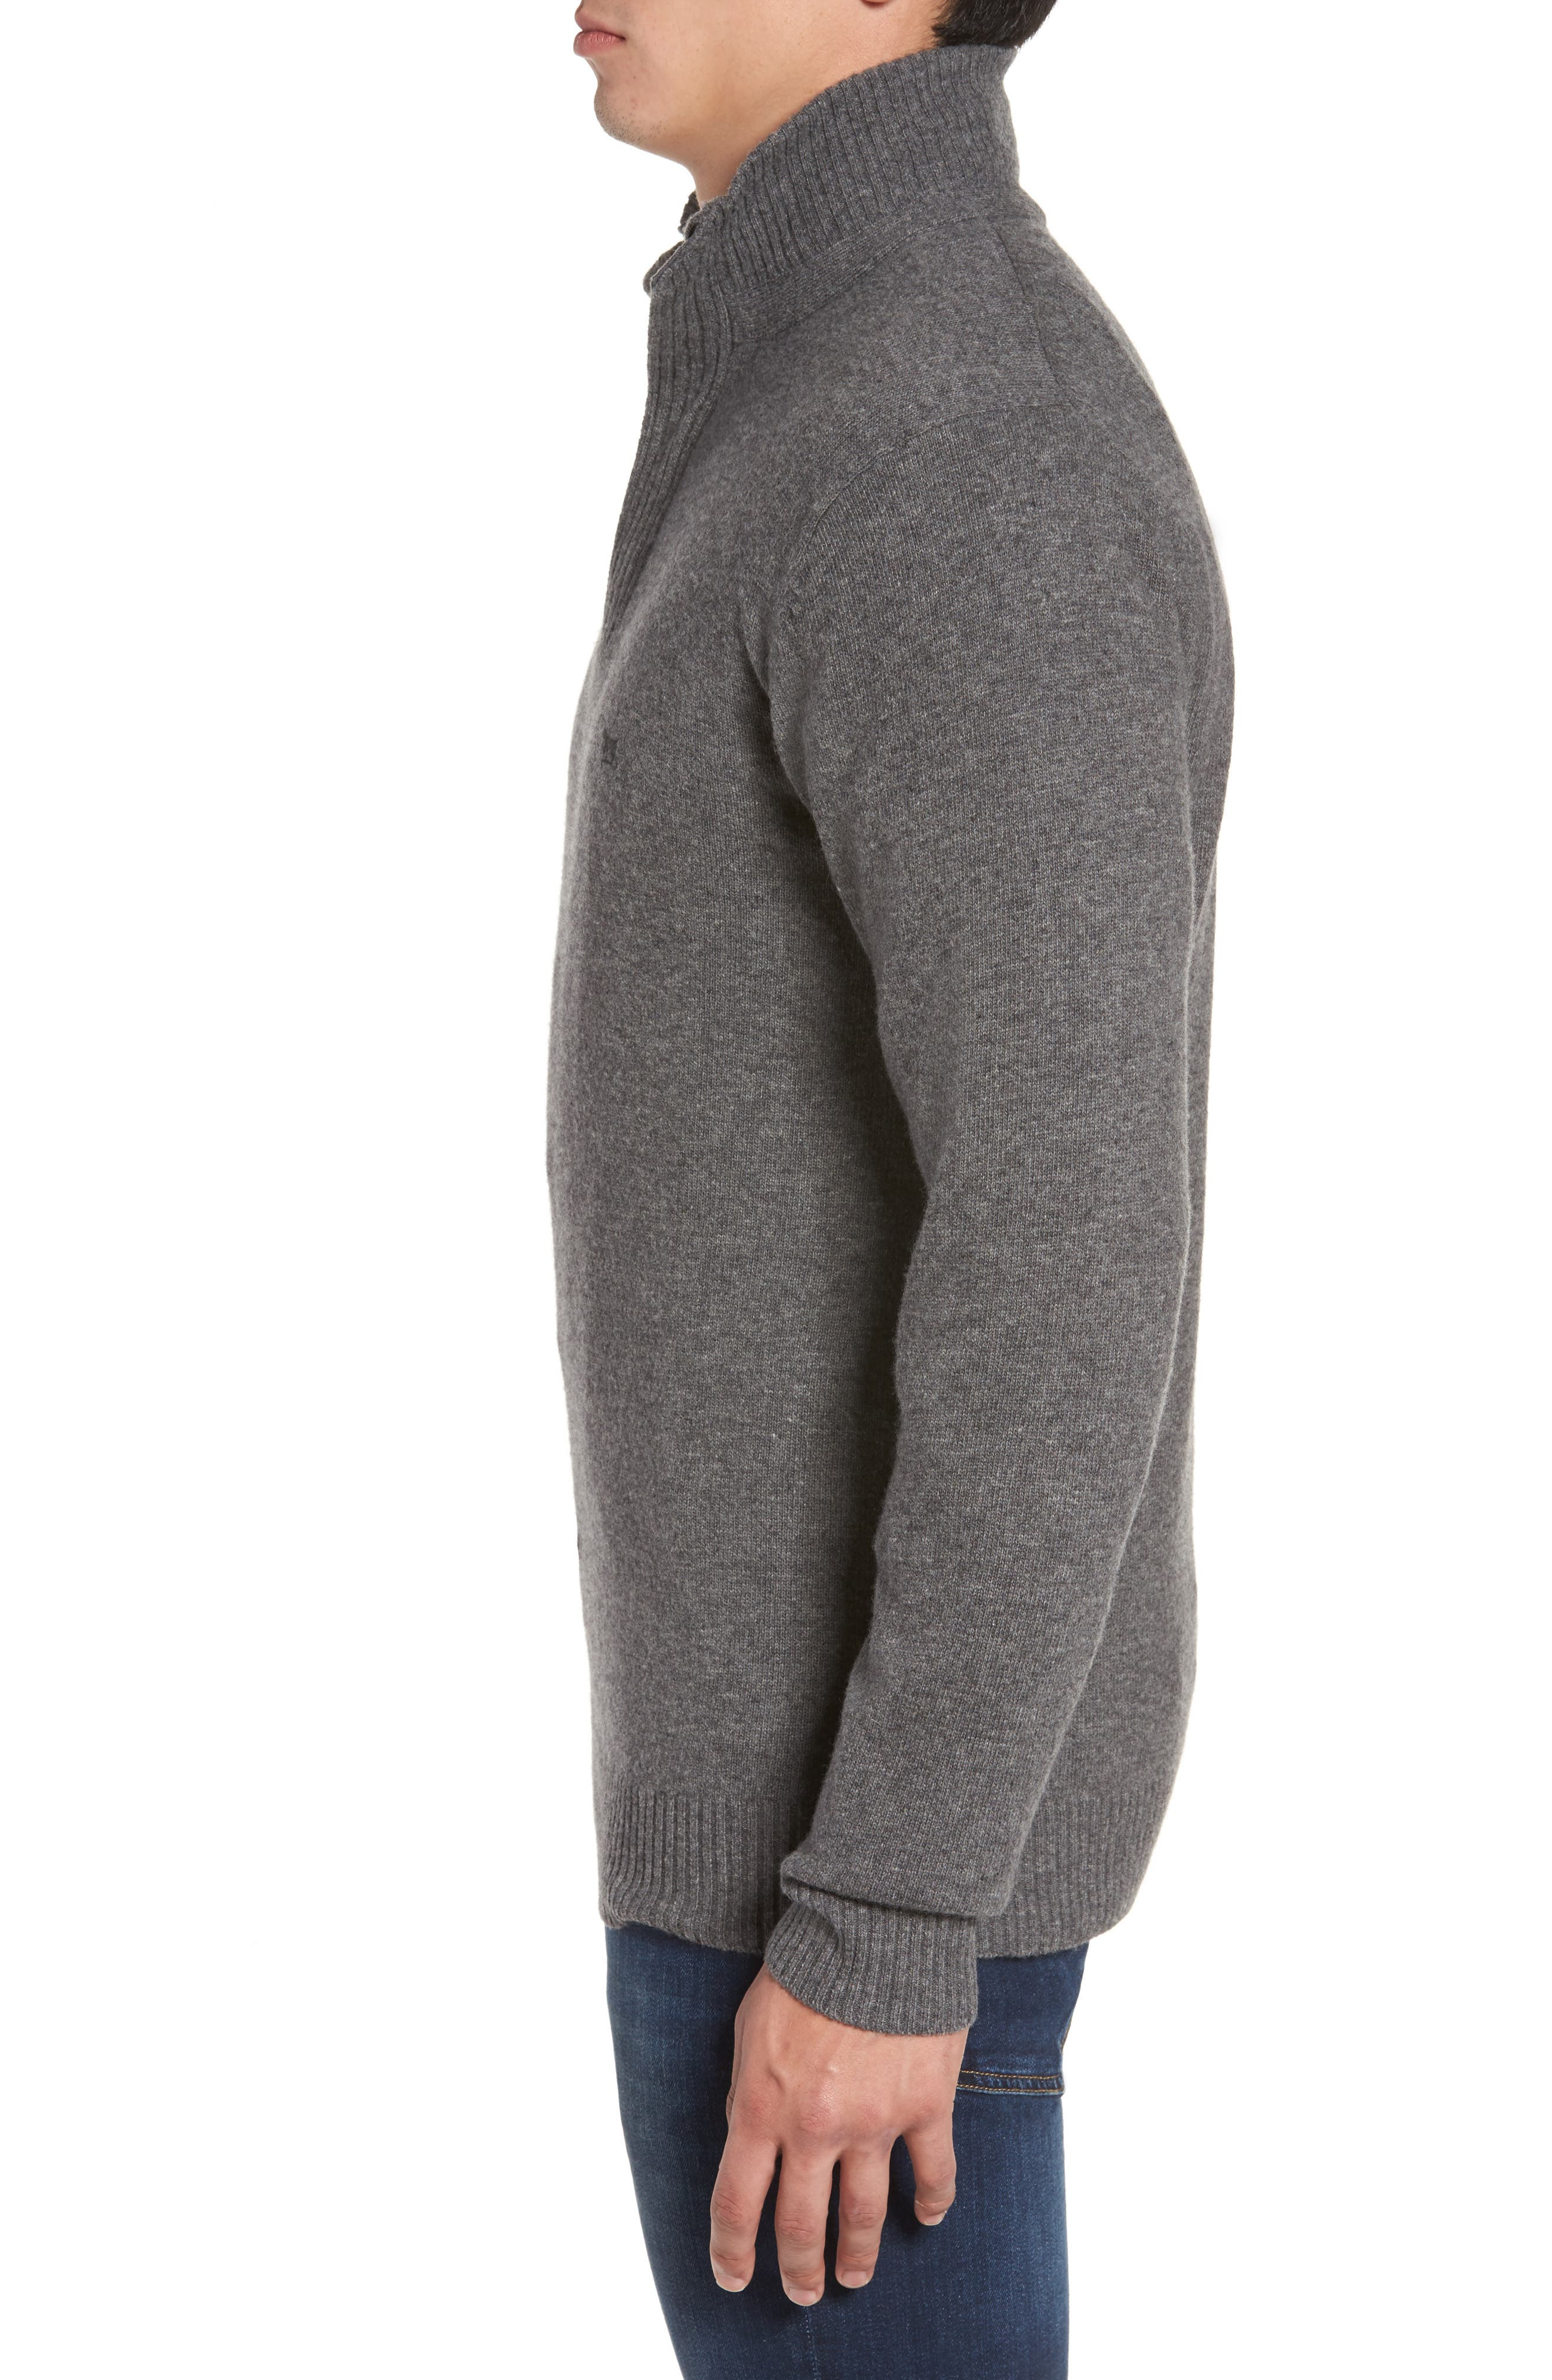 Cape Rodney Lambswool Pullover,                             Alternate thumbnail 3, color,                             CHARCOAL